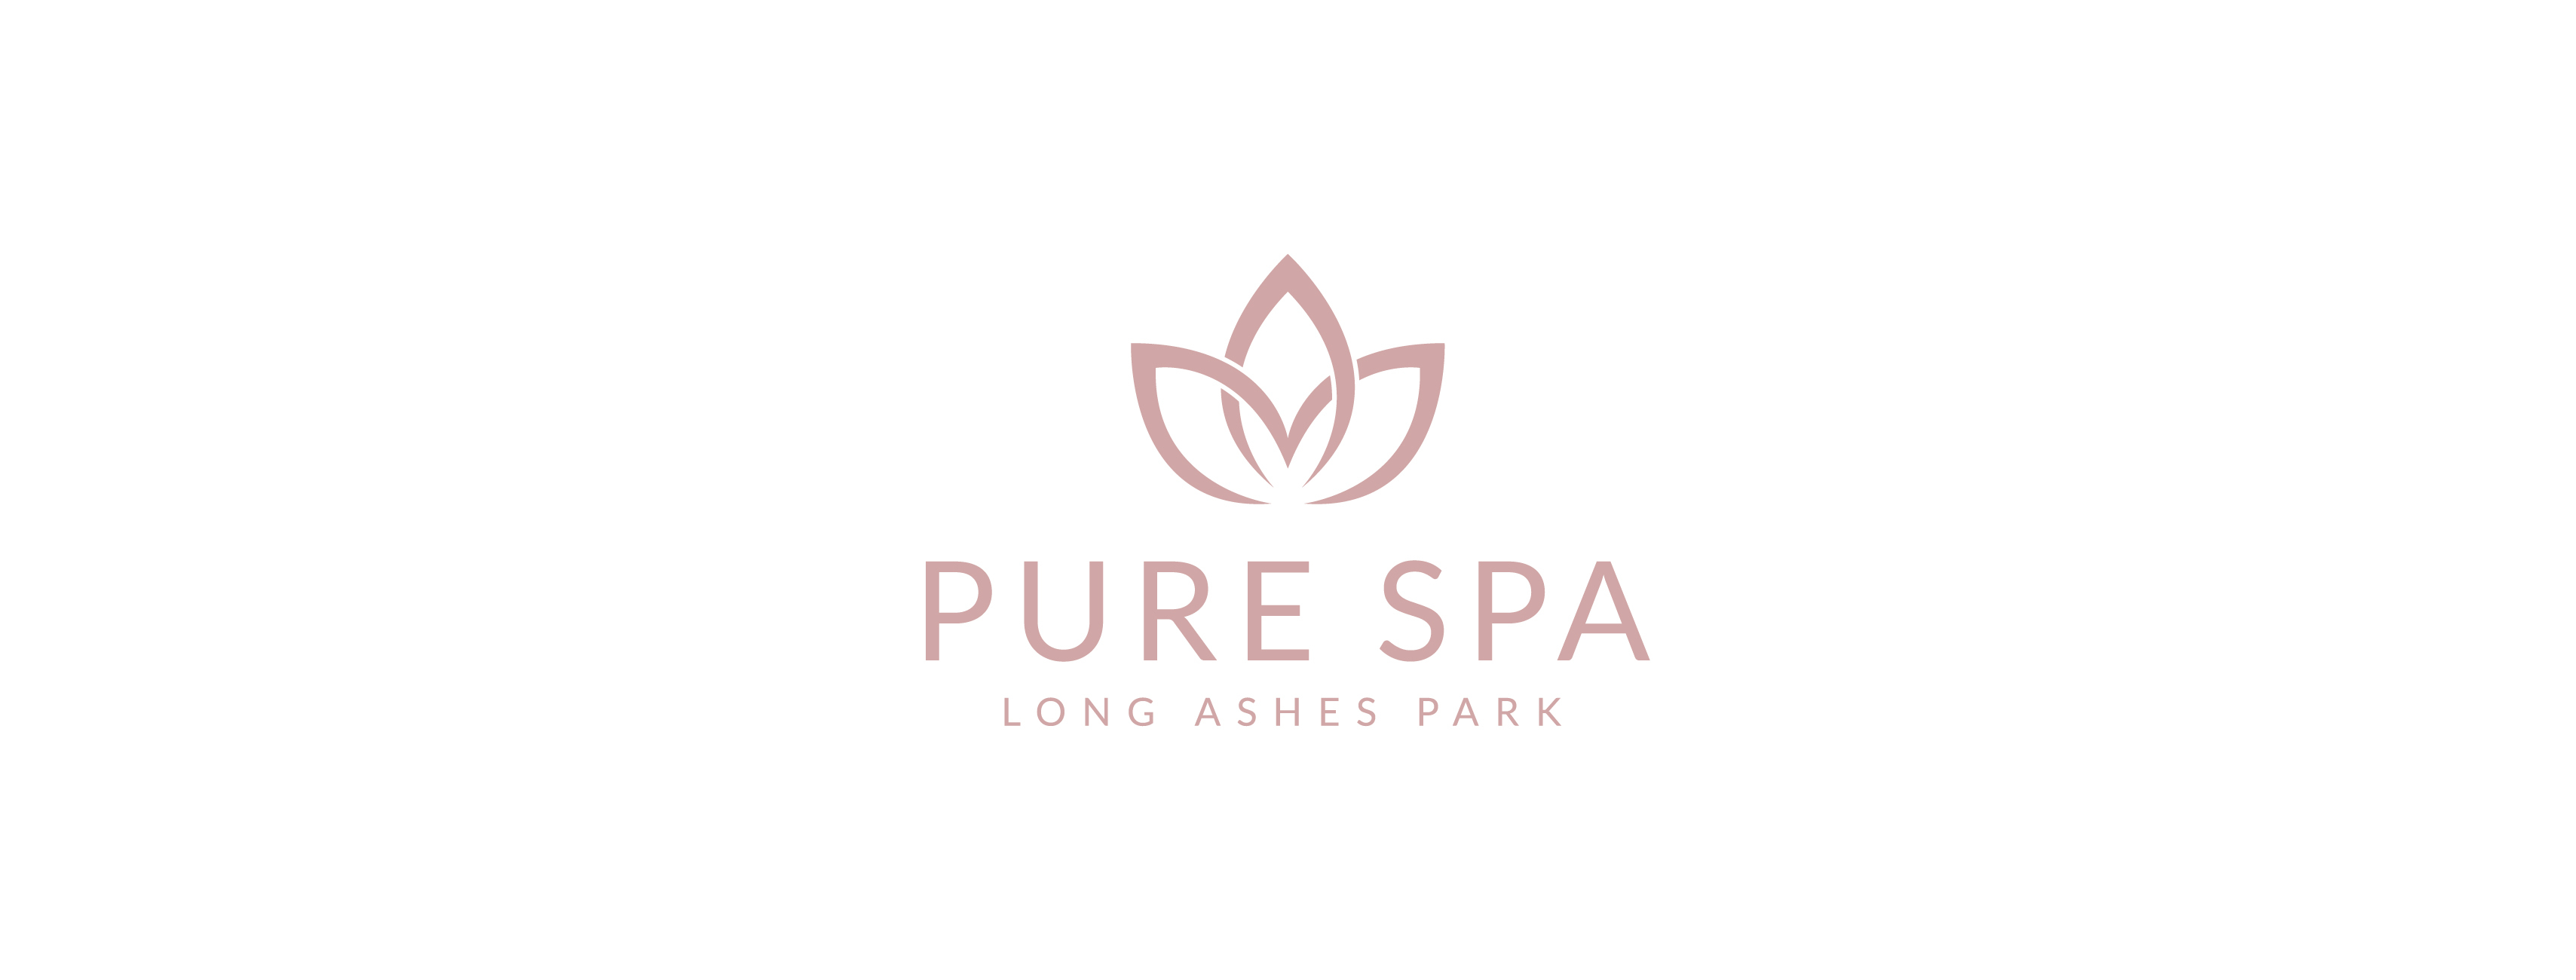 Long Ashes Pure Spa